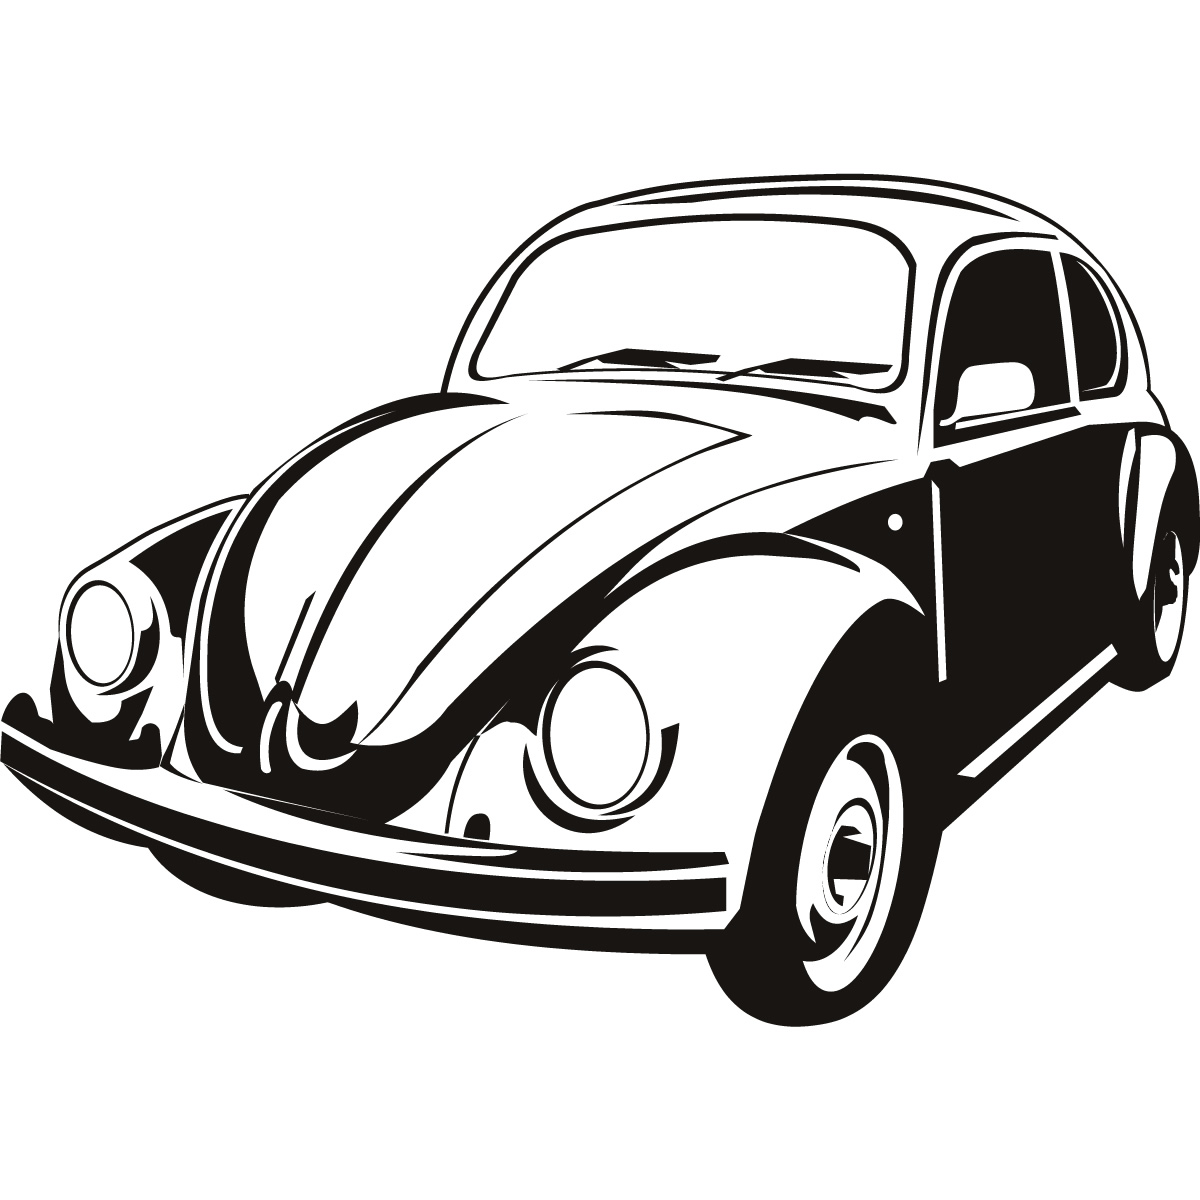 Vw Beetle Clipart 20 Free Cliparts